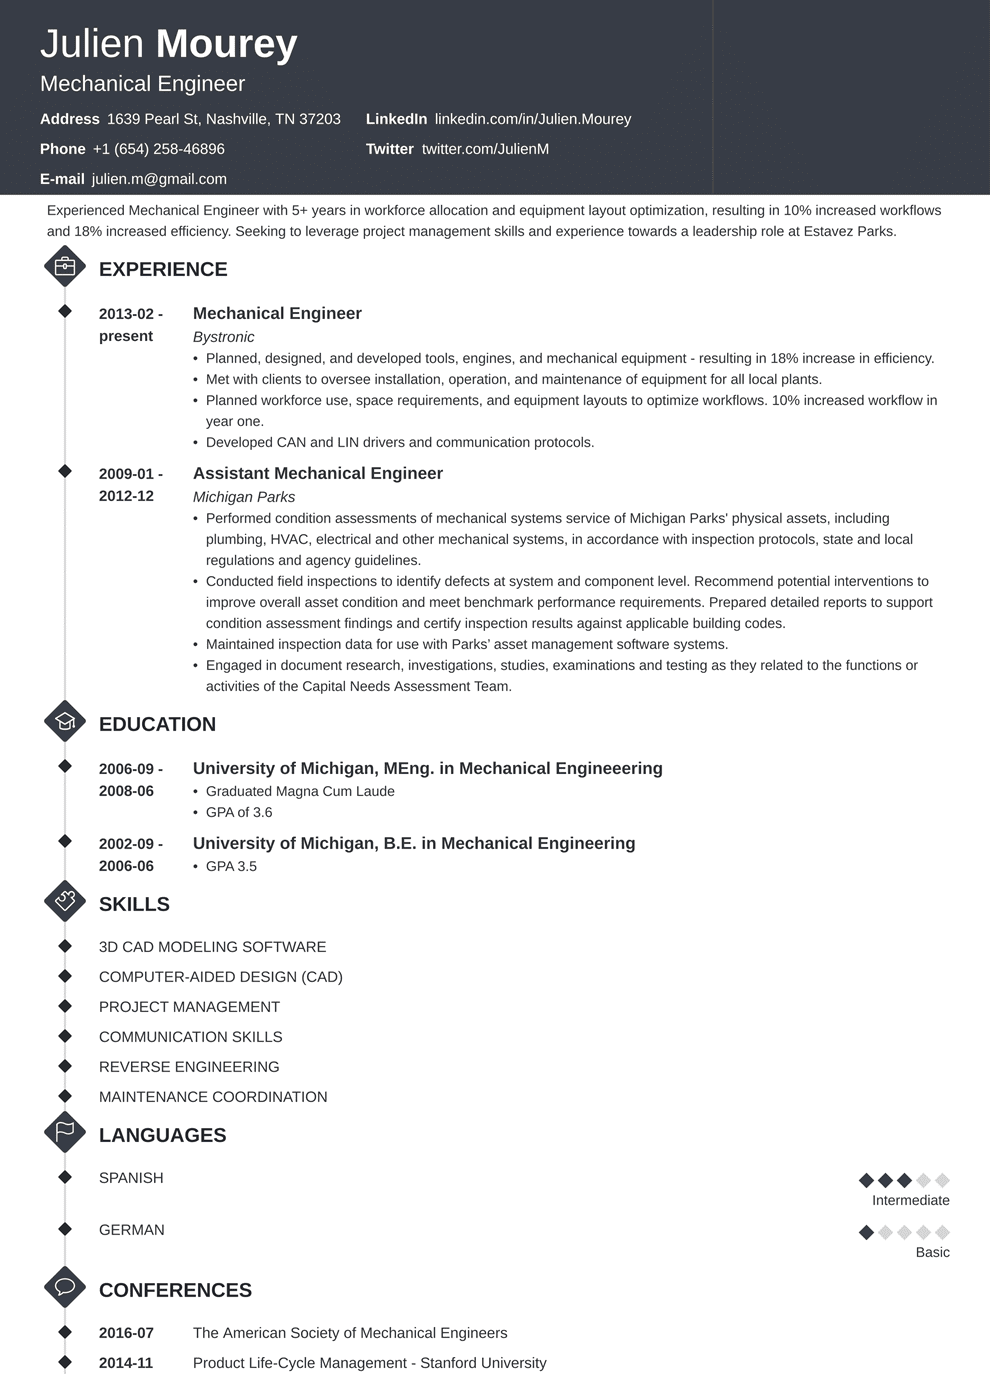 Mechanical Engineer Resume Example.Mechanical Engineering Resume Sample Guide 20 Examples